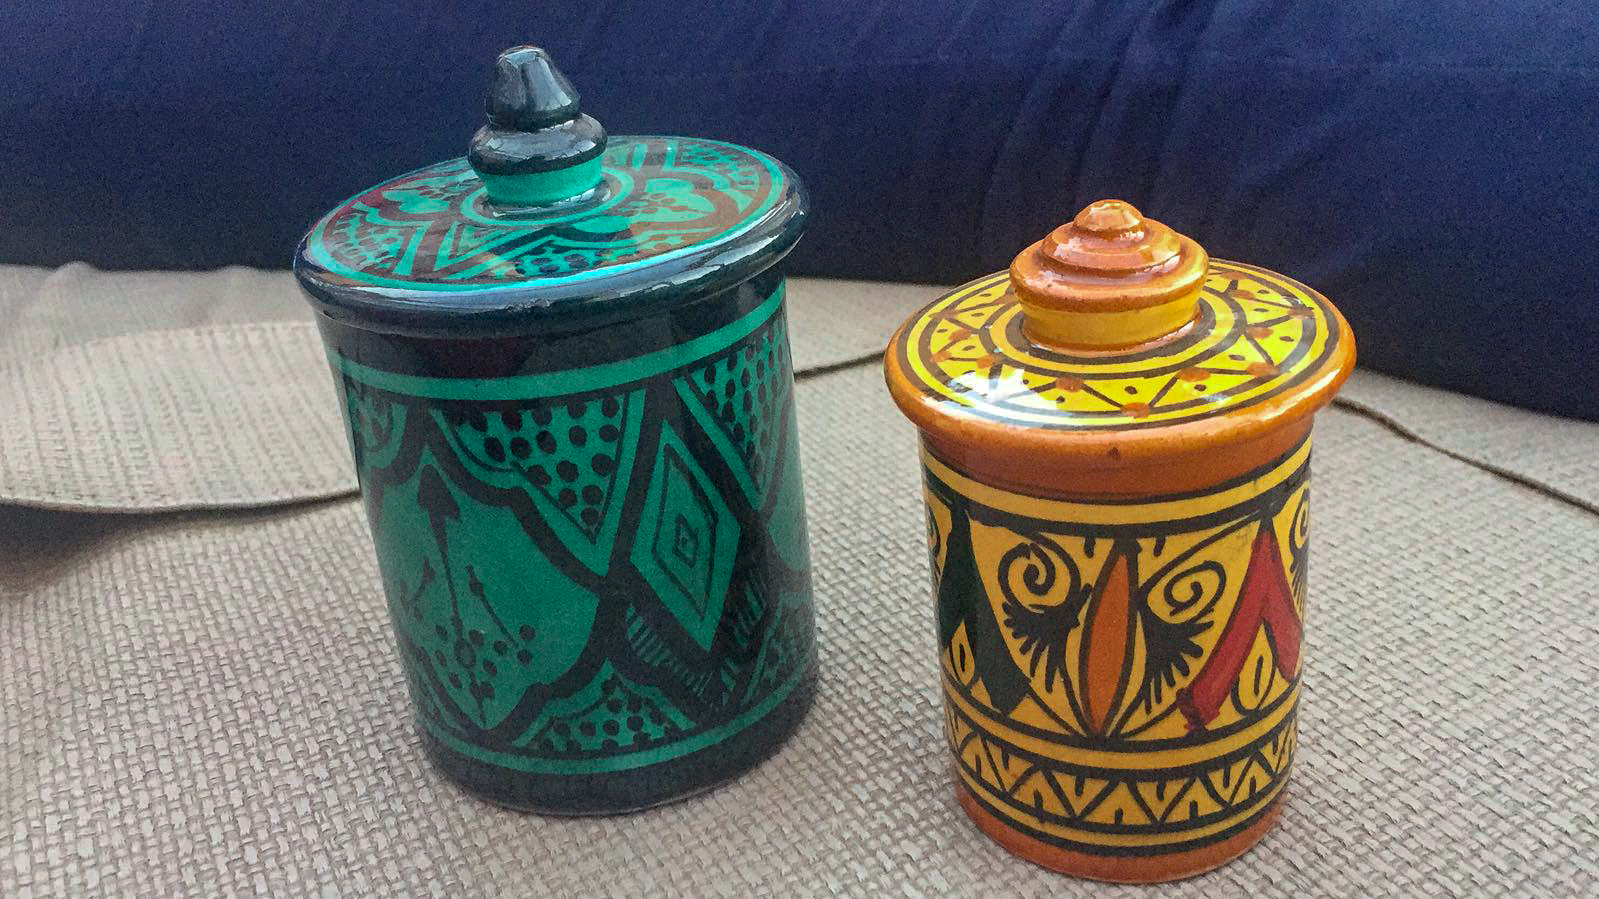 Little storage containers with typical moroccan patterns, perfect for storing sweet treats or just for decoration!